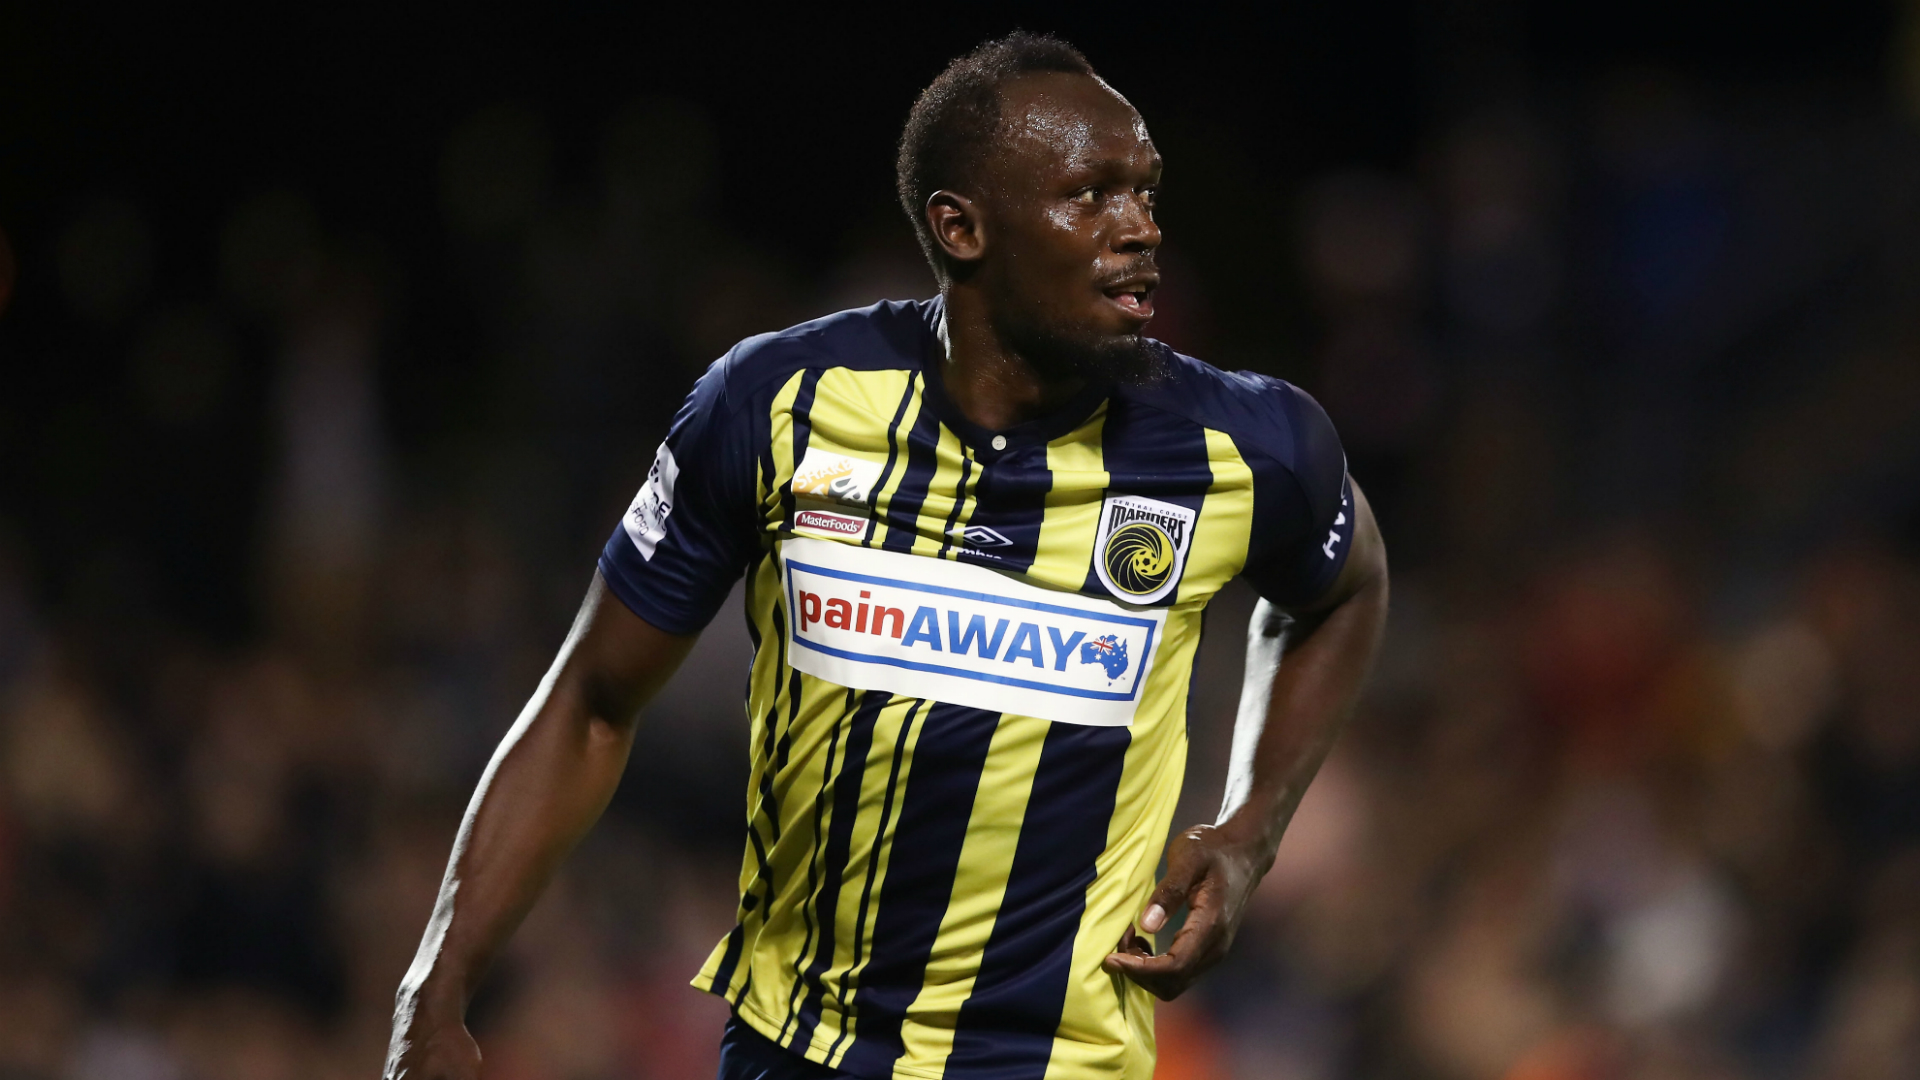 Mariners tight-lipped on Bolt offer